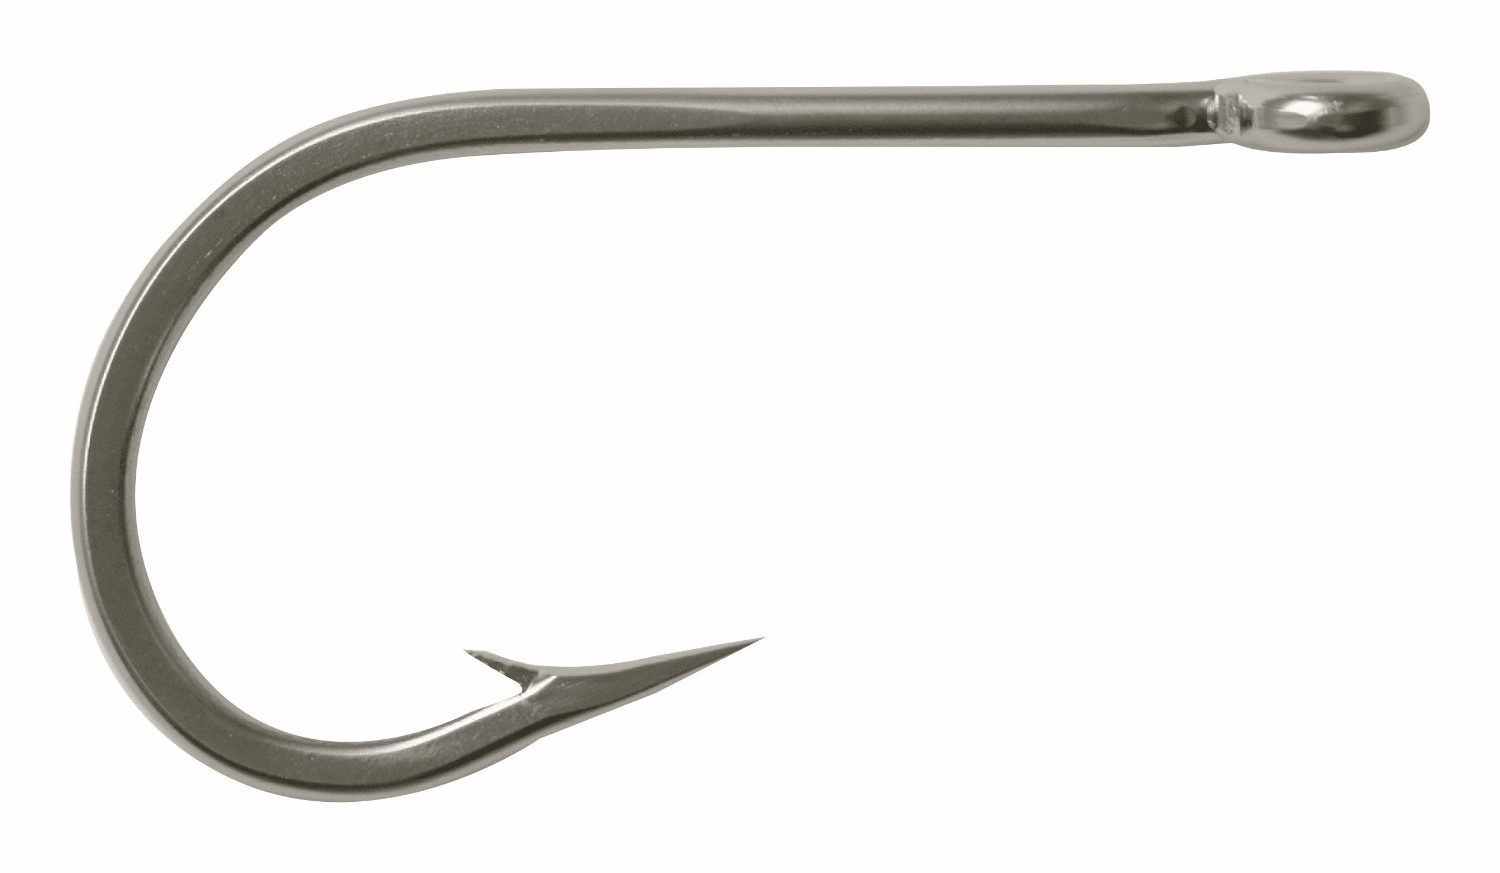 Stainless Steel Trolling Tuna Hooks- Model 7691S - 11/0 - 20 pcs